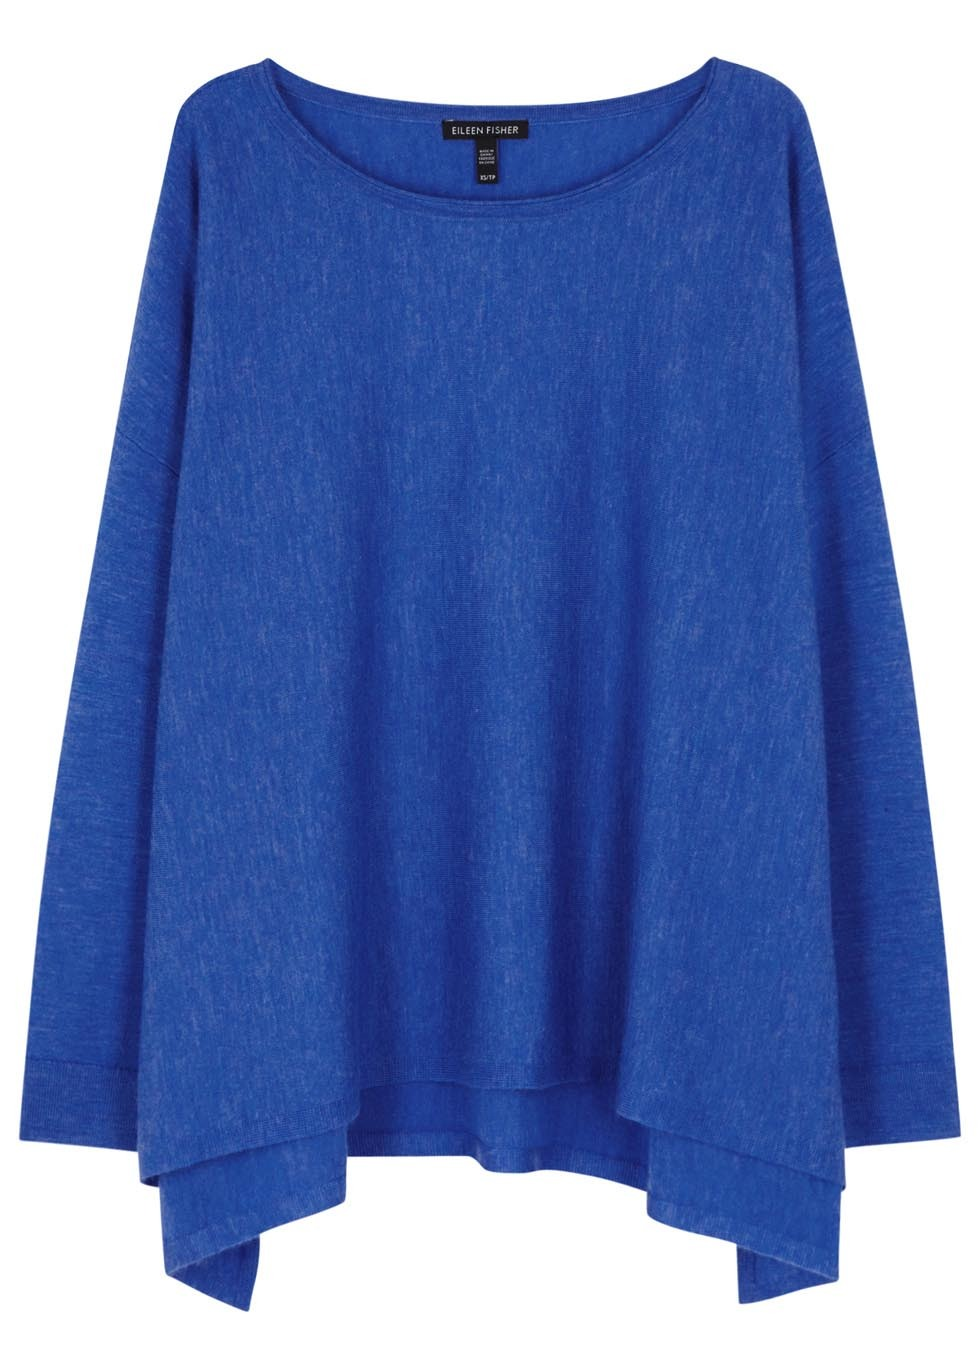 Blue Draped Cashmere Jumper - neckline: round neck; pattern: plain; style: standard; predominant colour: royal blue; occasions: casual; length: standard; fit: loose; fibres: cashmere - 100%; sleeve length: long sleeve; sleeve style: standard; texture group: knits/crochet; pattern type: fabric; season: s/s 2016; wardrobe: highlight